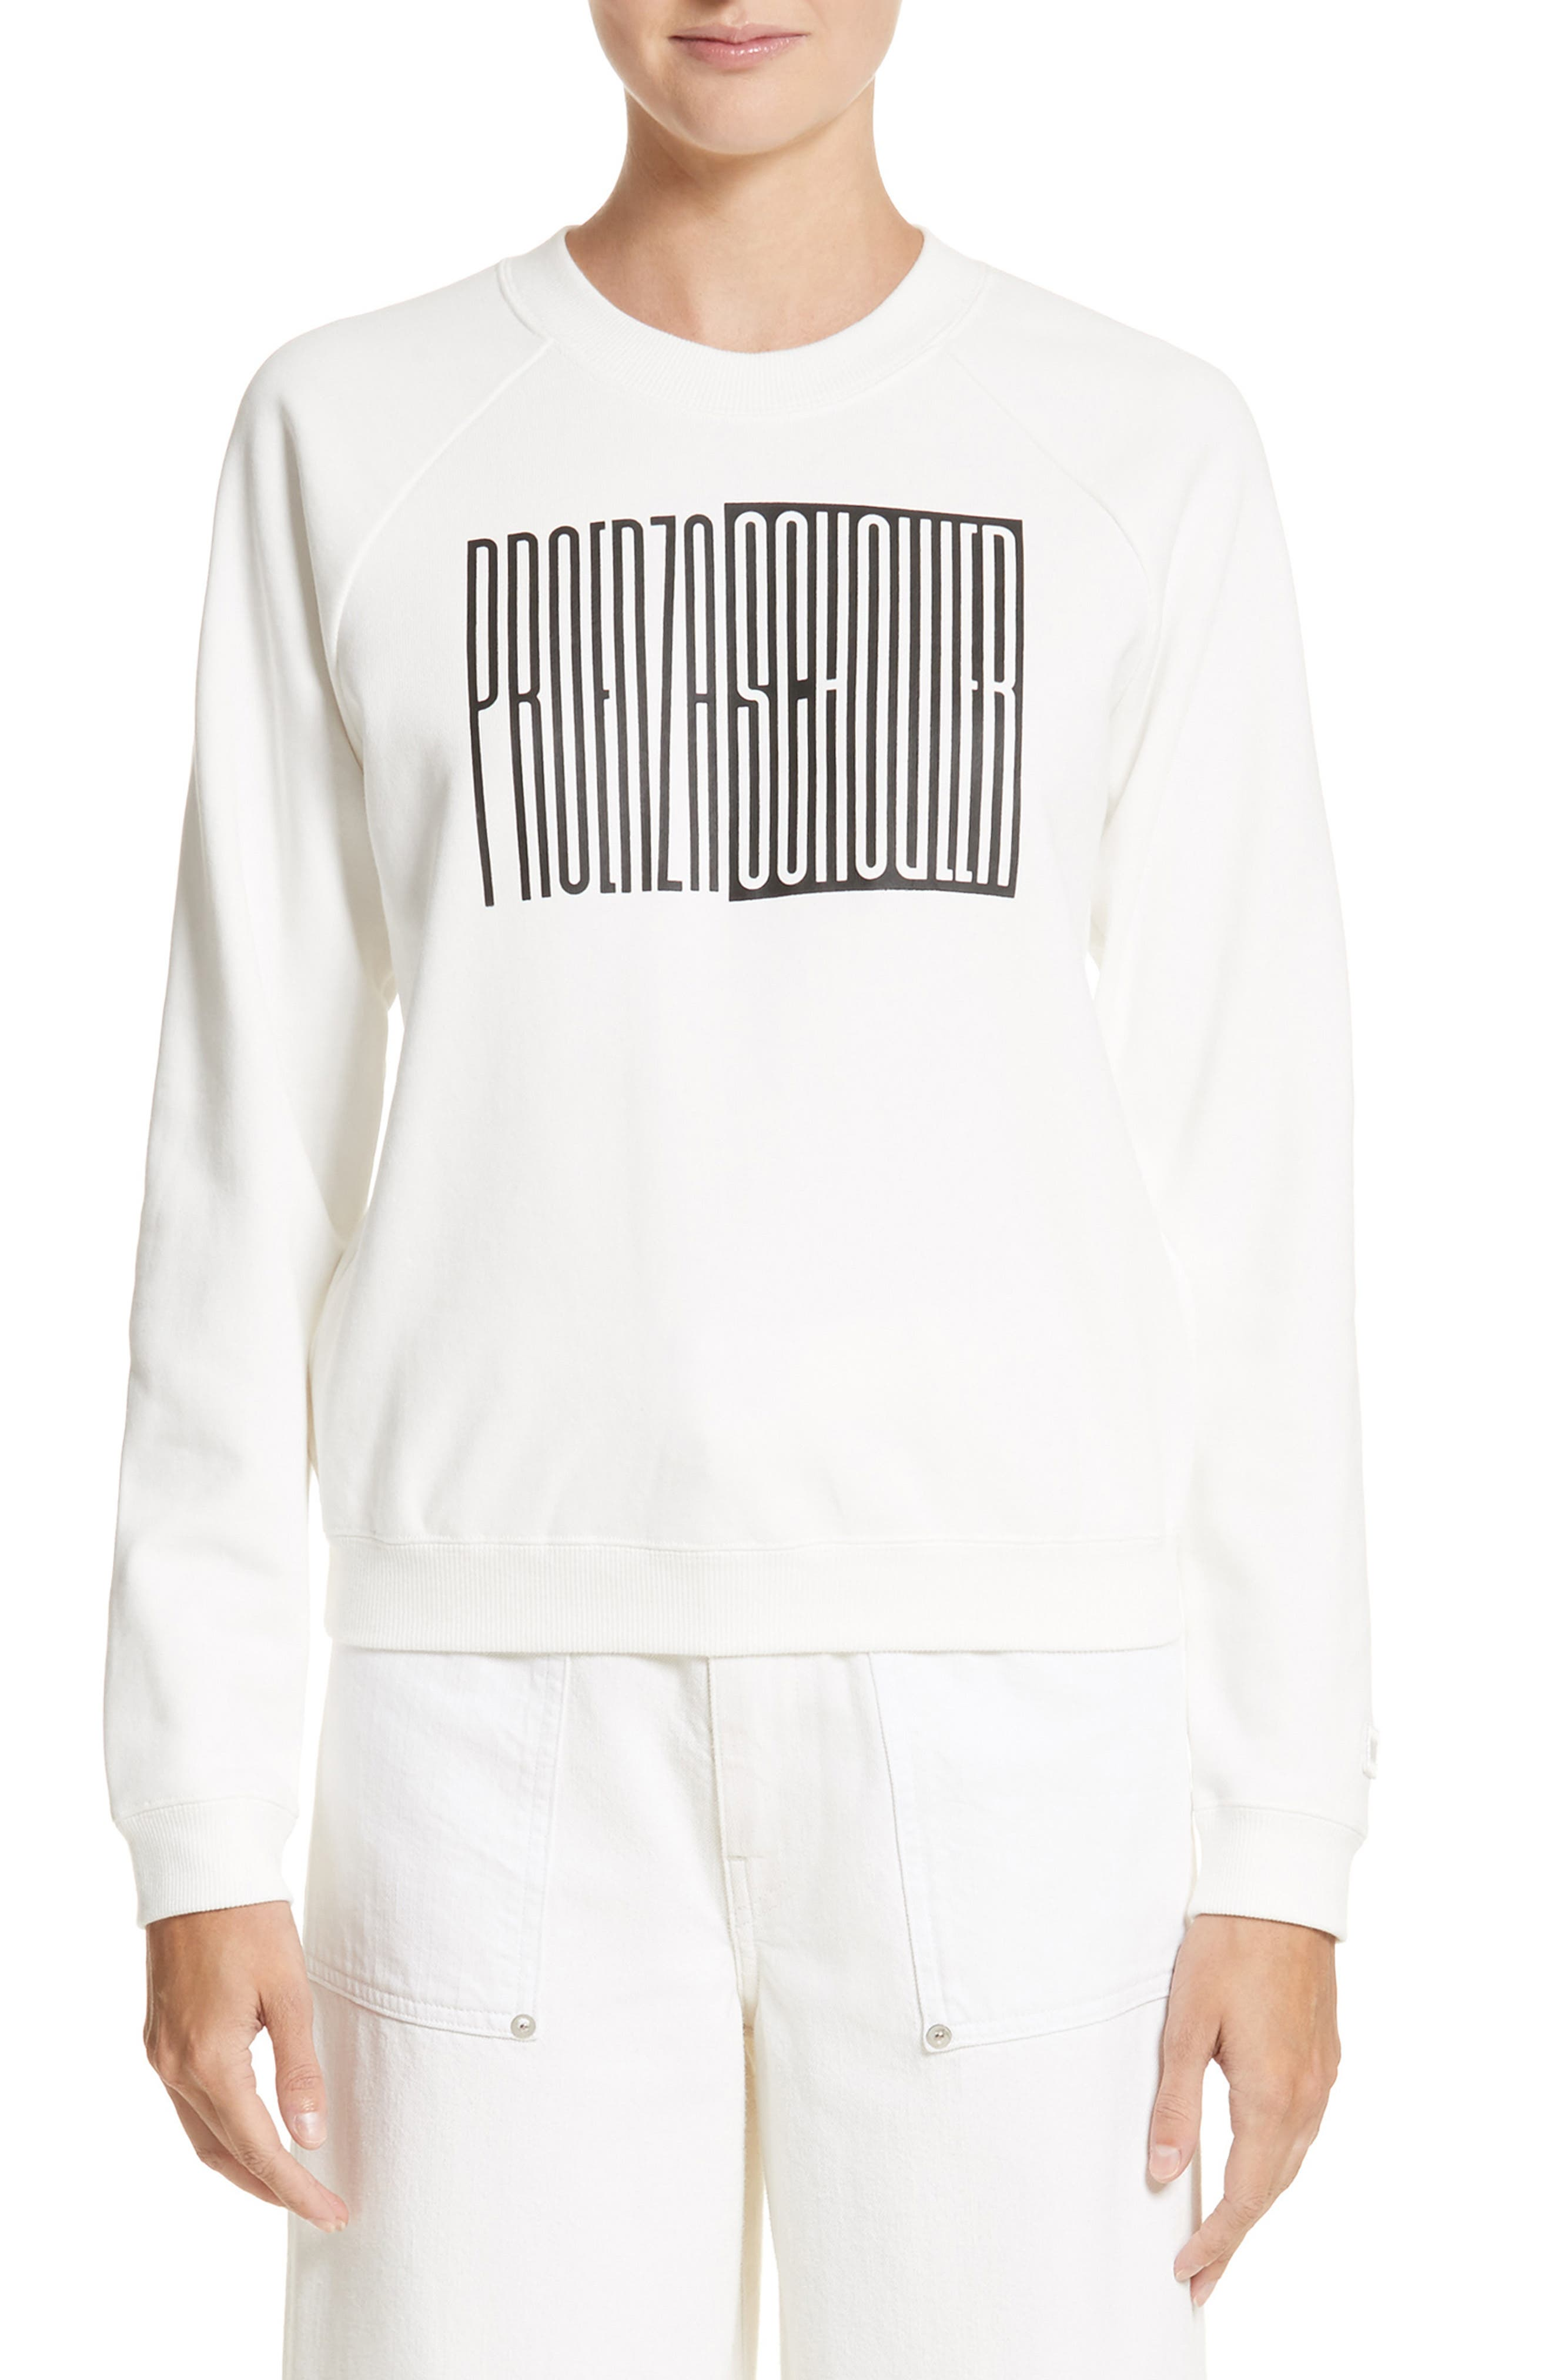 PSWL Graphic Jersey Shrunken Sweatshirt,                         Main,                         color, White/ Black Logo